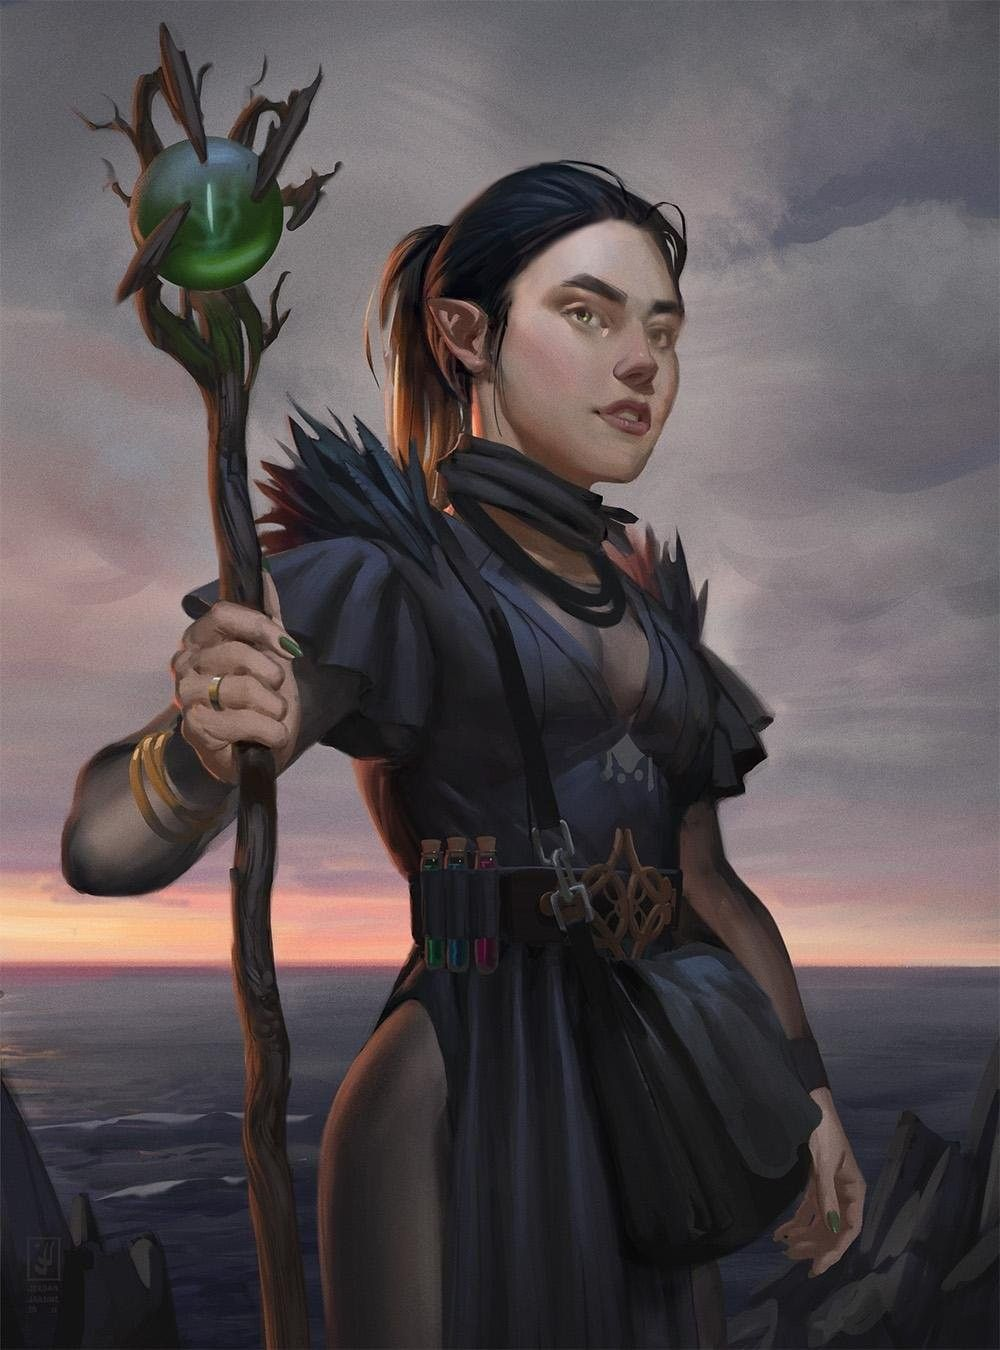 Pin By Joren Skov On Mages And Wizards Fantasy Magician Female Wizard Female Elf